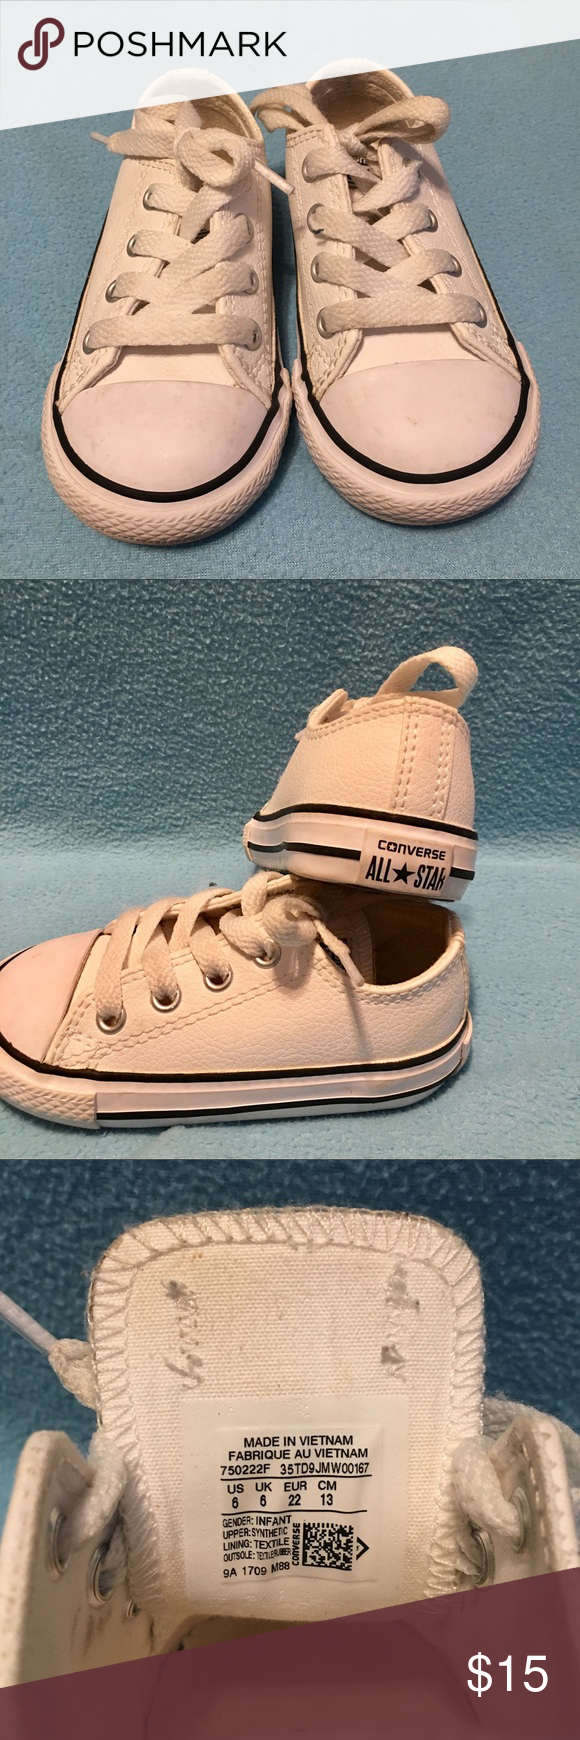 infant size 6 leather converse - 53